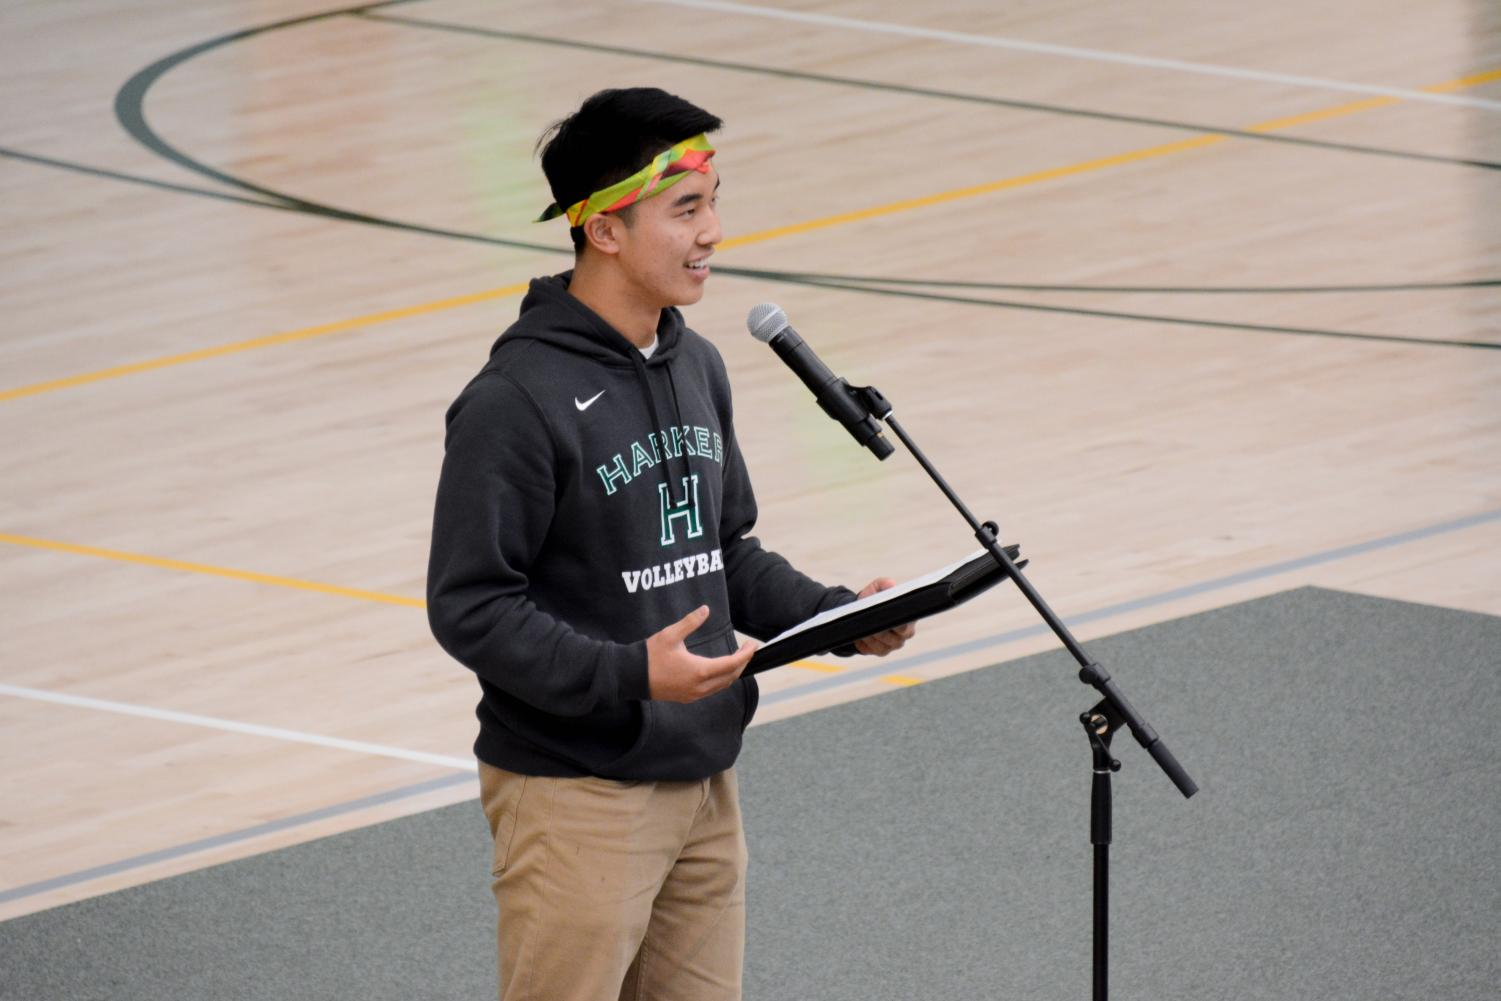 ASB president Jimmy Lin (12) delivers his State of the School address, in which he reviewed student council's projects and work over the course of the school year. Jimmy delivered his customary line,